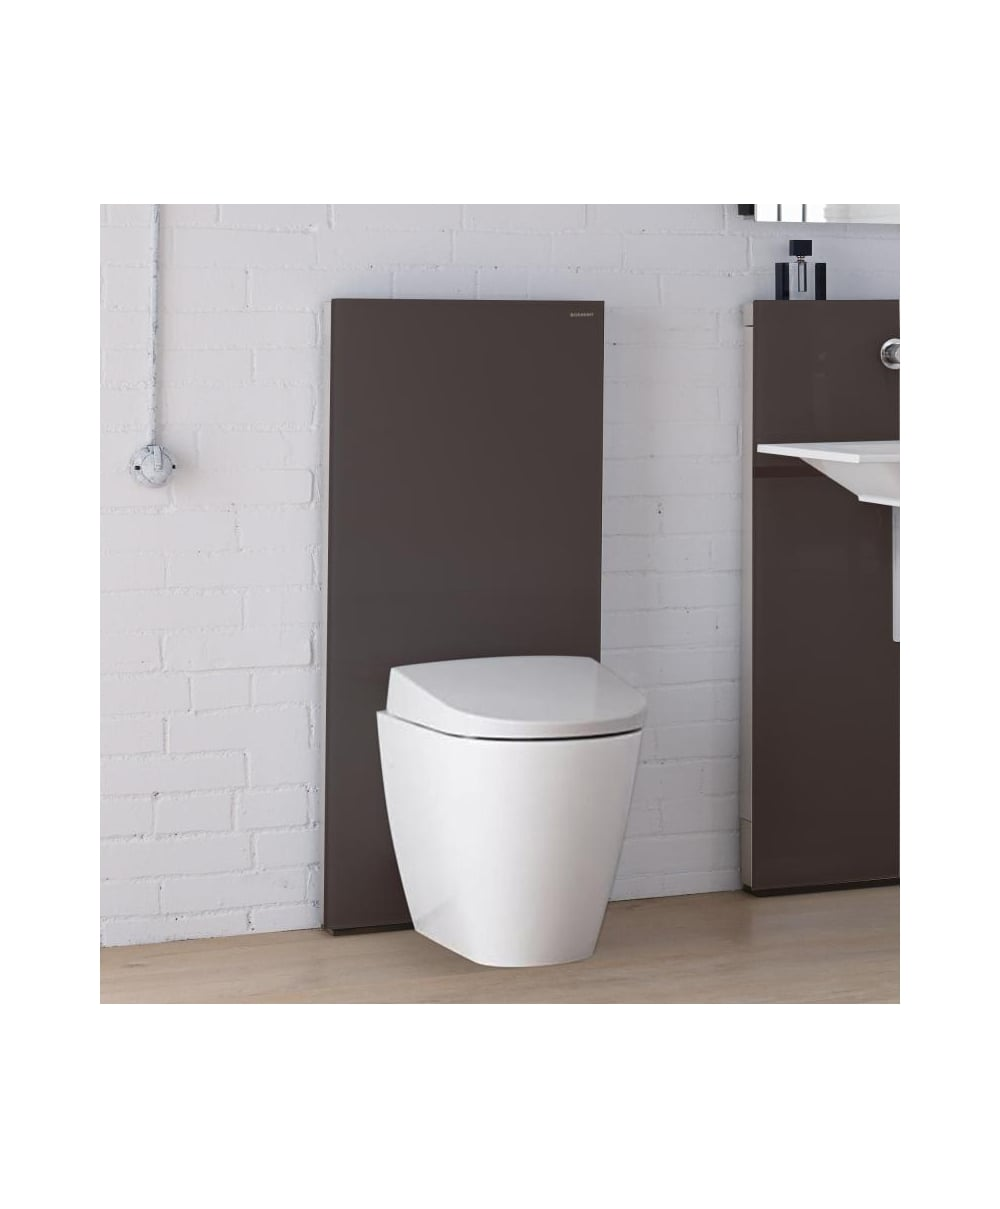 geberit unterputz sp lkasten wassermenge einstellen geberit reisser toilettensp lung reparieren. Black Bedroom Furniture Sets. Home Design Ideas